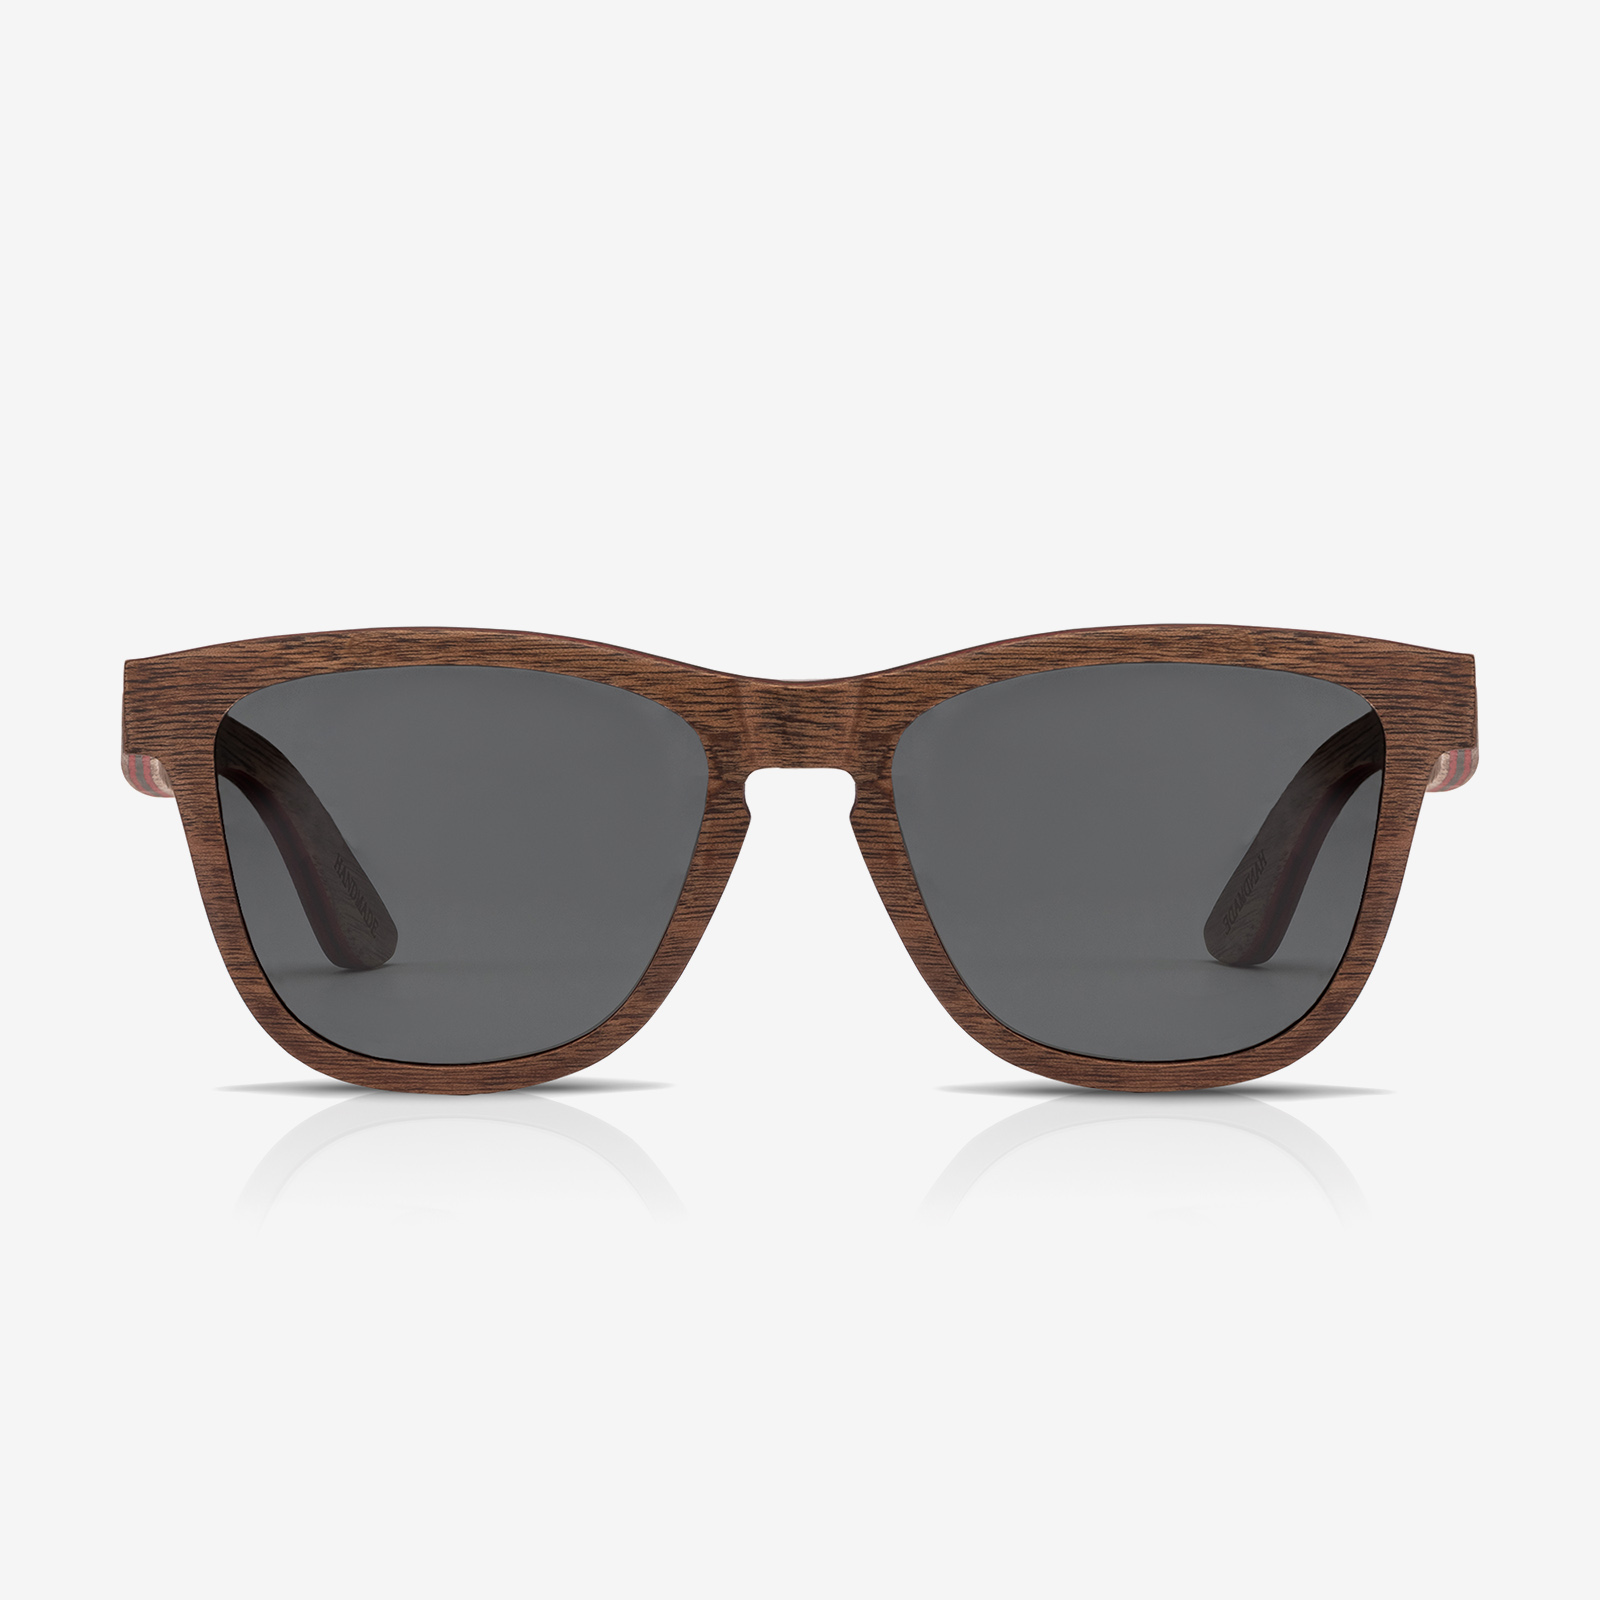 Sunglasses product image